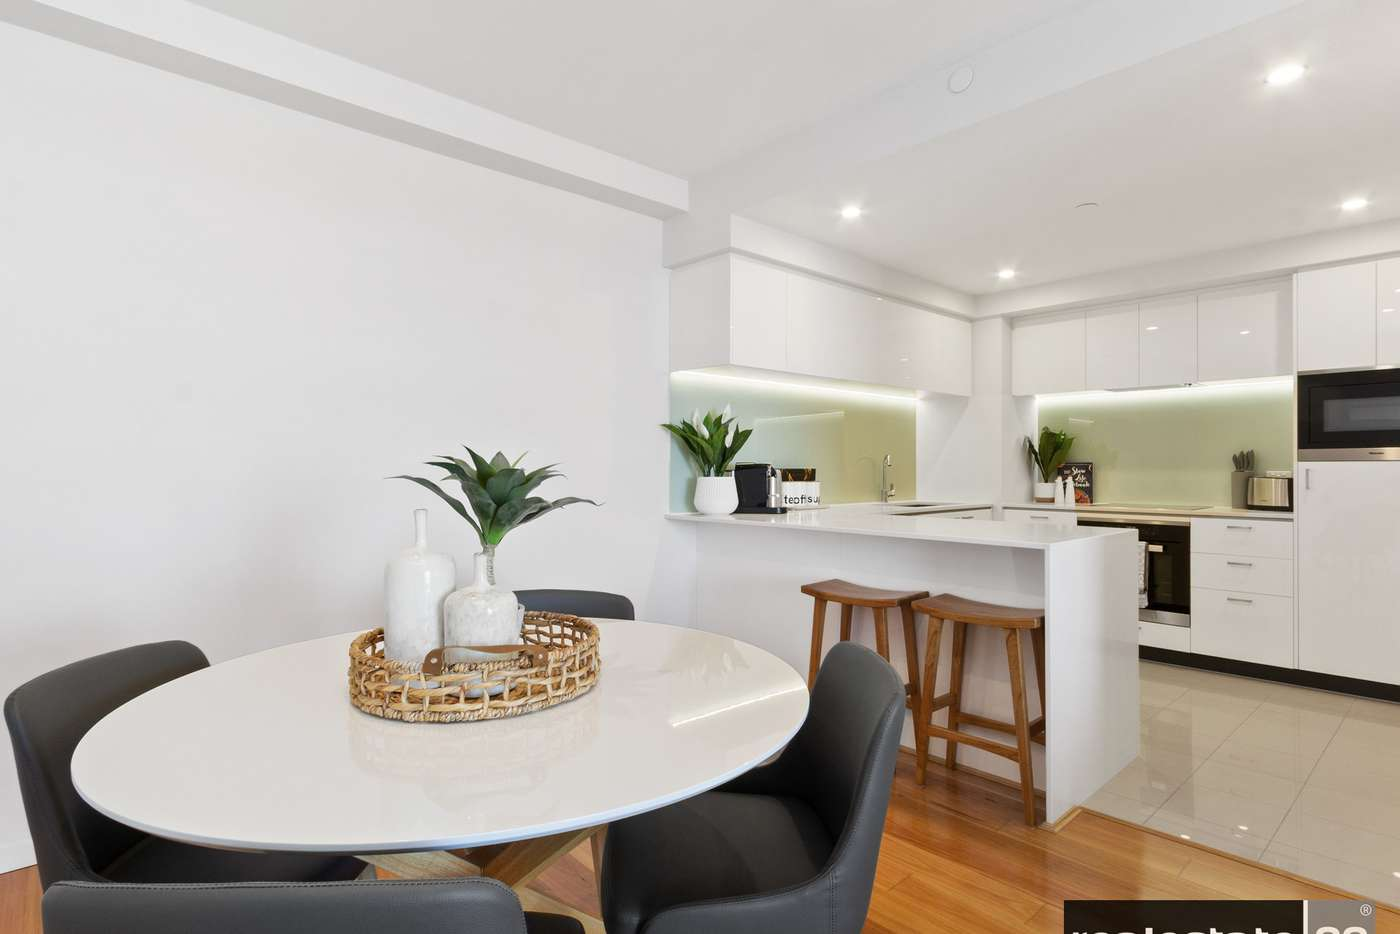 Seventh view of Homely apartment listing, 142/189 Adelaide Terrace, East Perth WA 6004